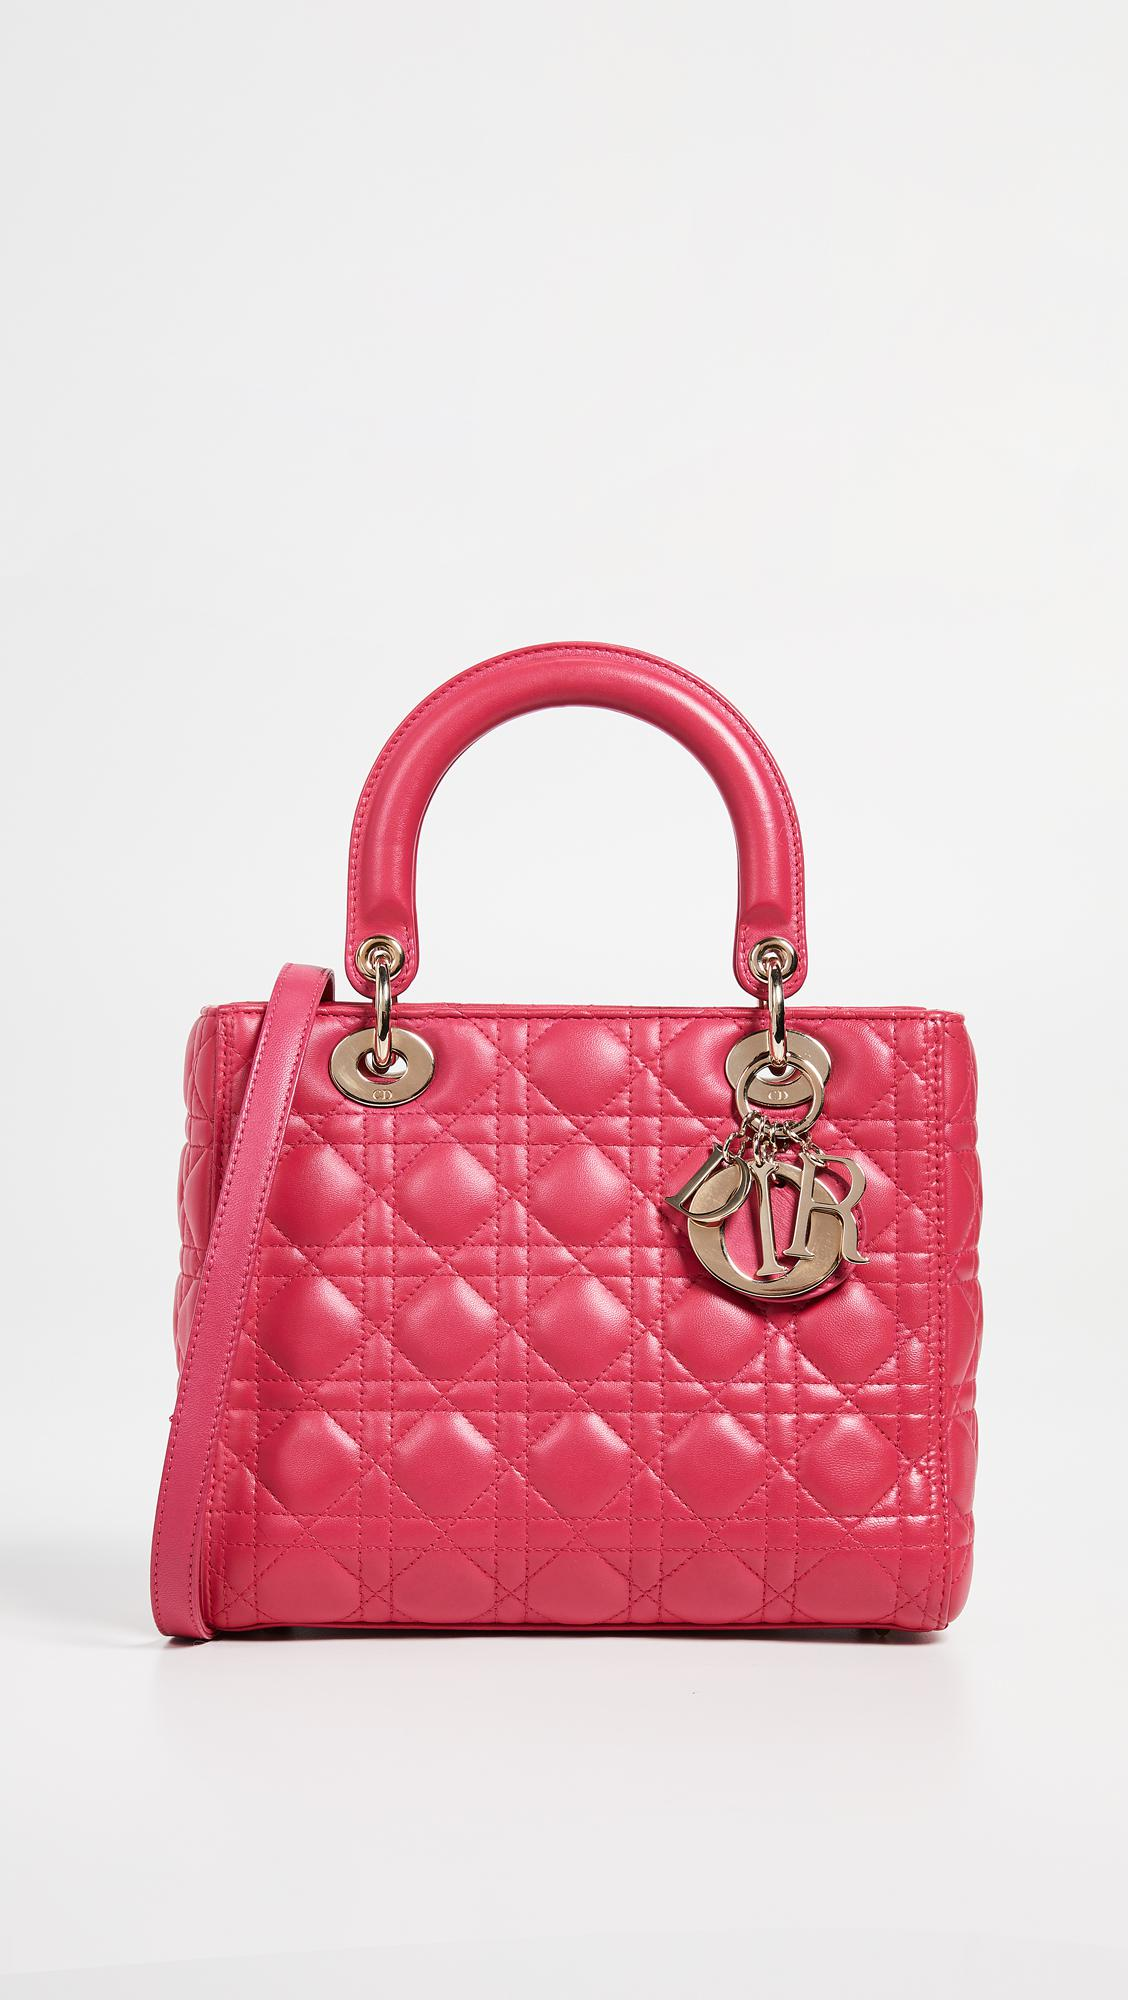 02d2b98e692d What Goes Around Comes Around Dior Lady Dior Bag in Pink - Lyst